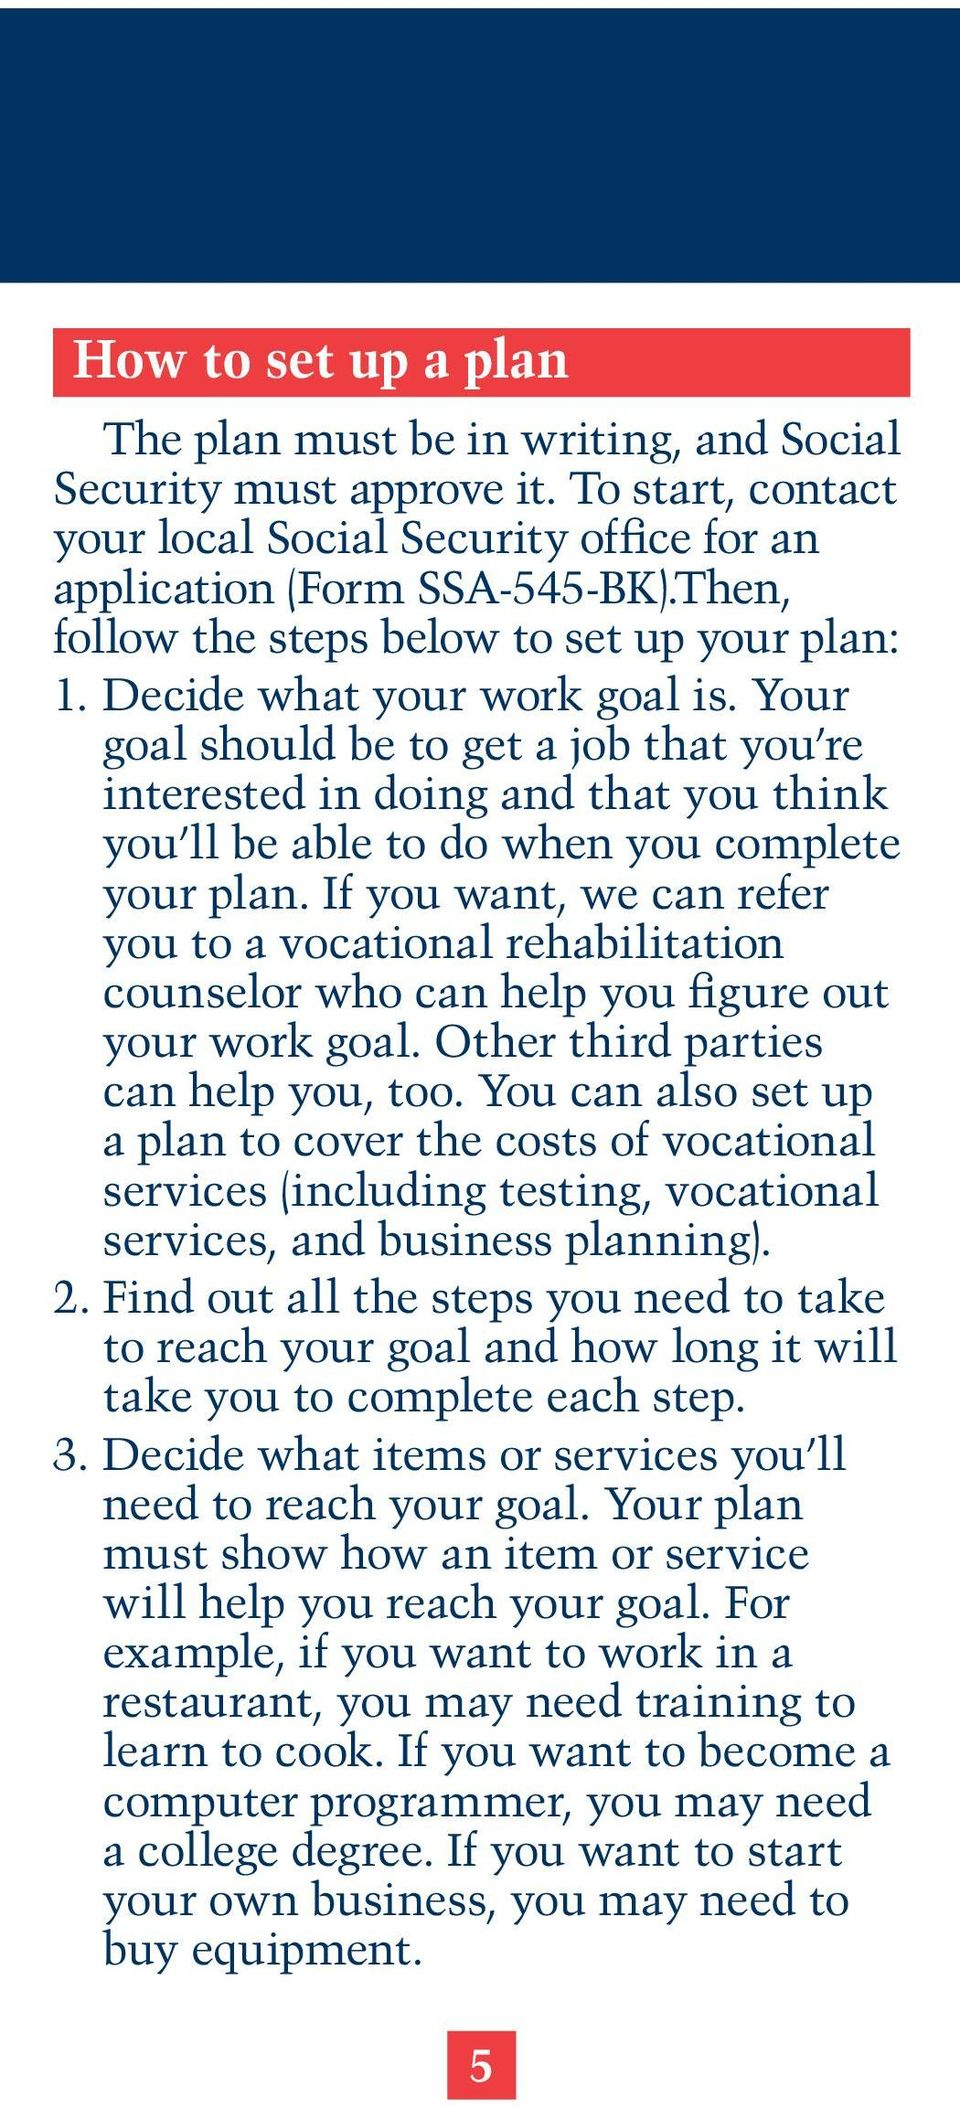 Your goal should be to get a job that you re interested in doing and that you think you ll be able to do when you complete your plan.